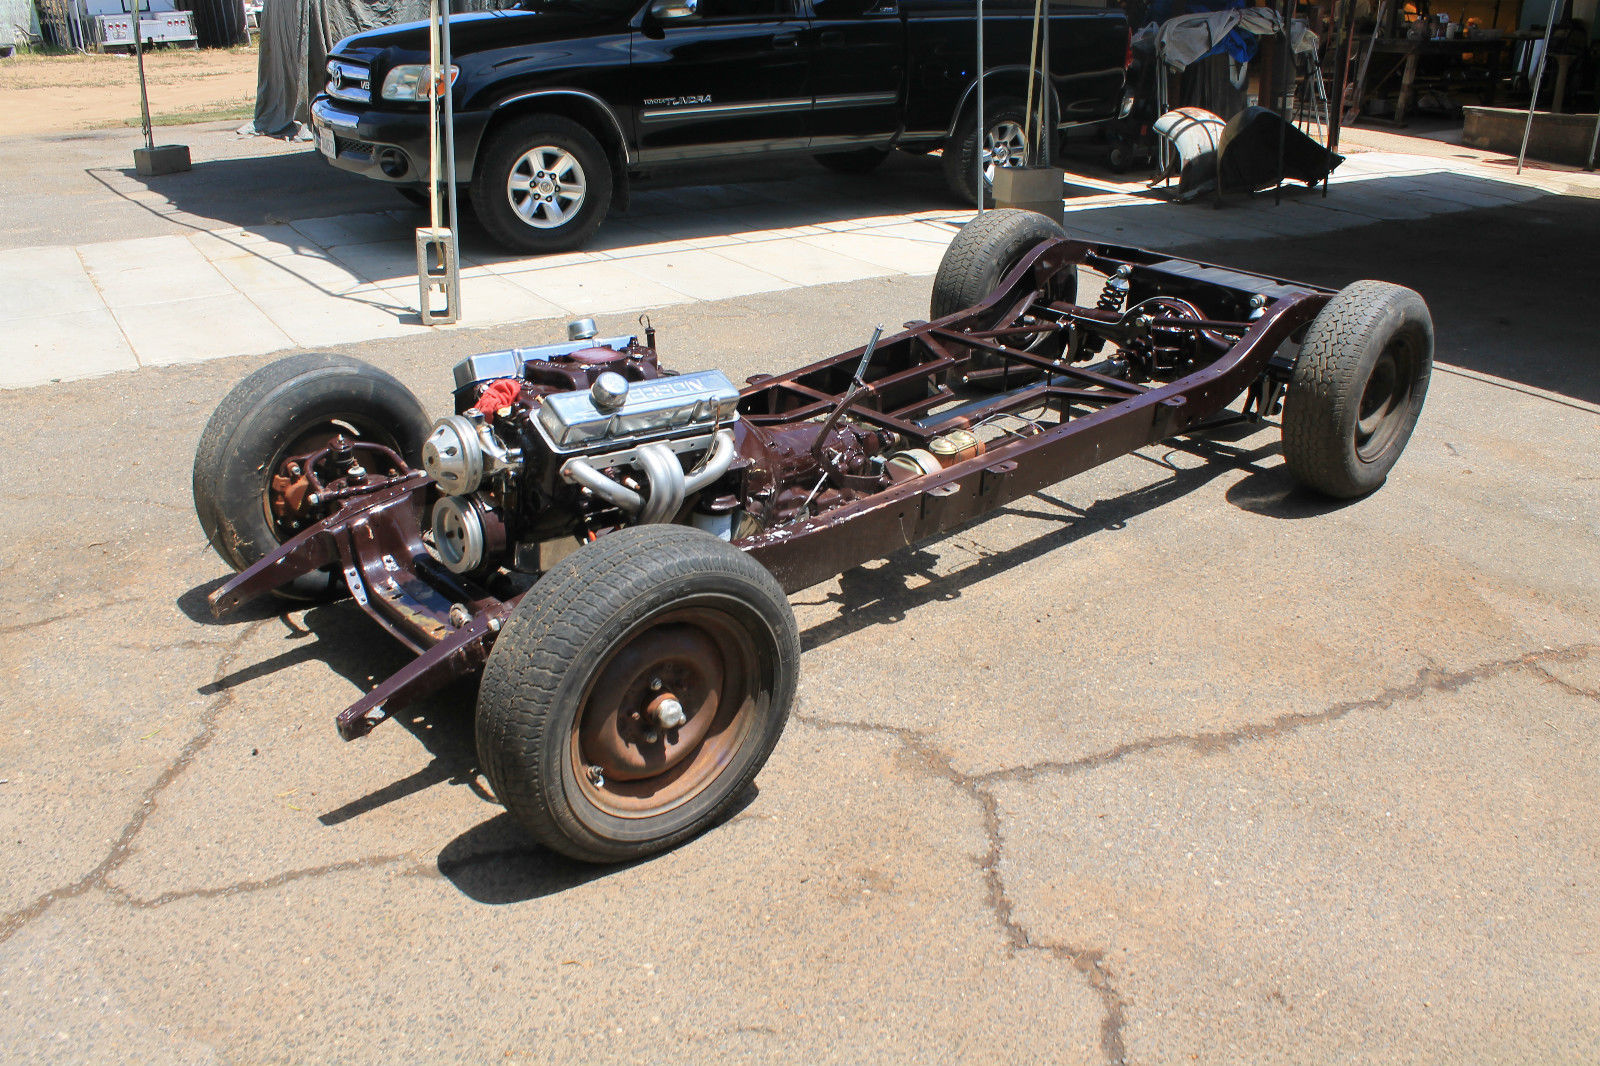 1932 hot rod rolling chassis street rod for sale in Escondido ...